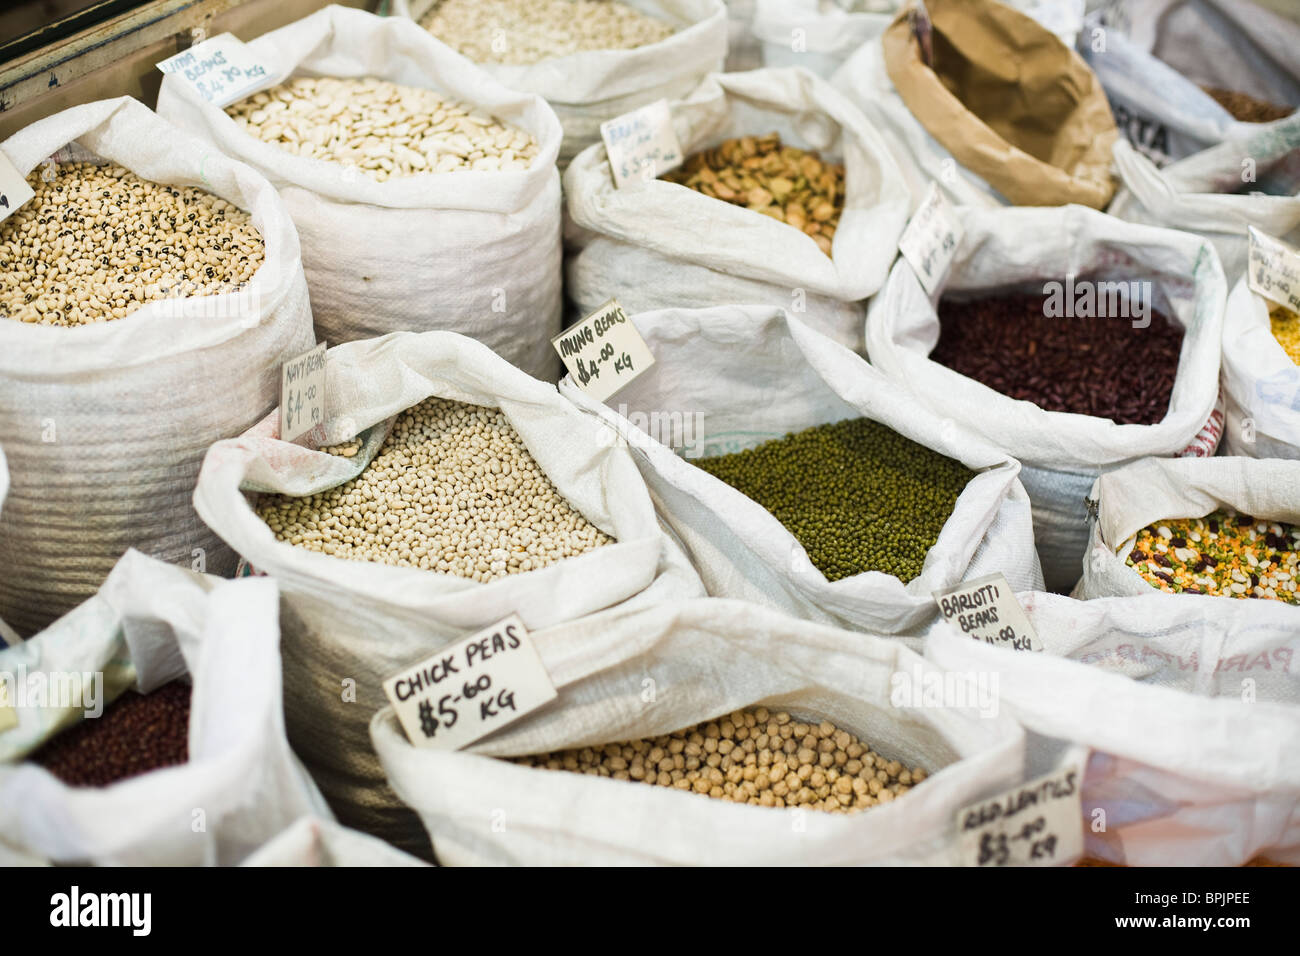 Sacks of beans being sold in a open market - Stock Image